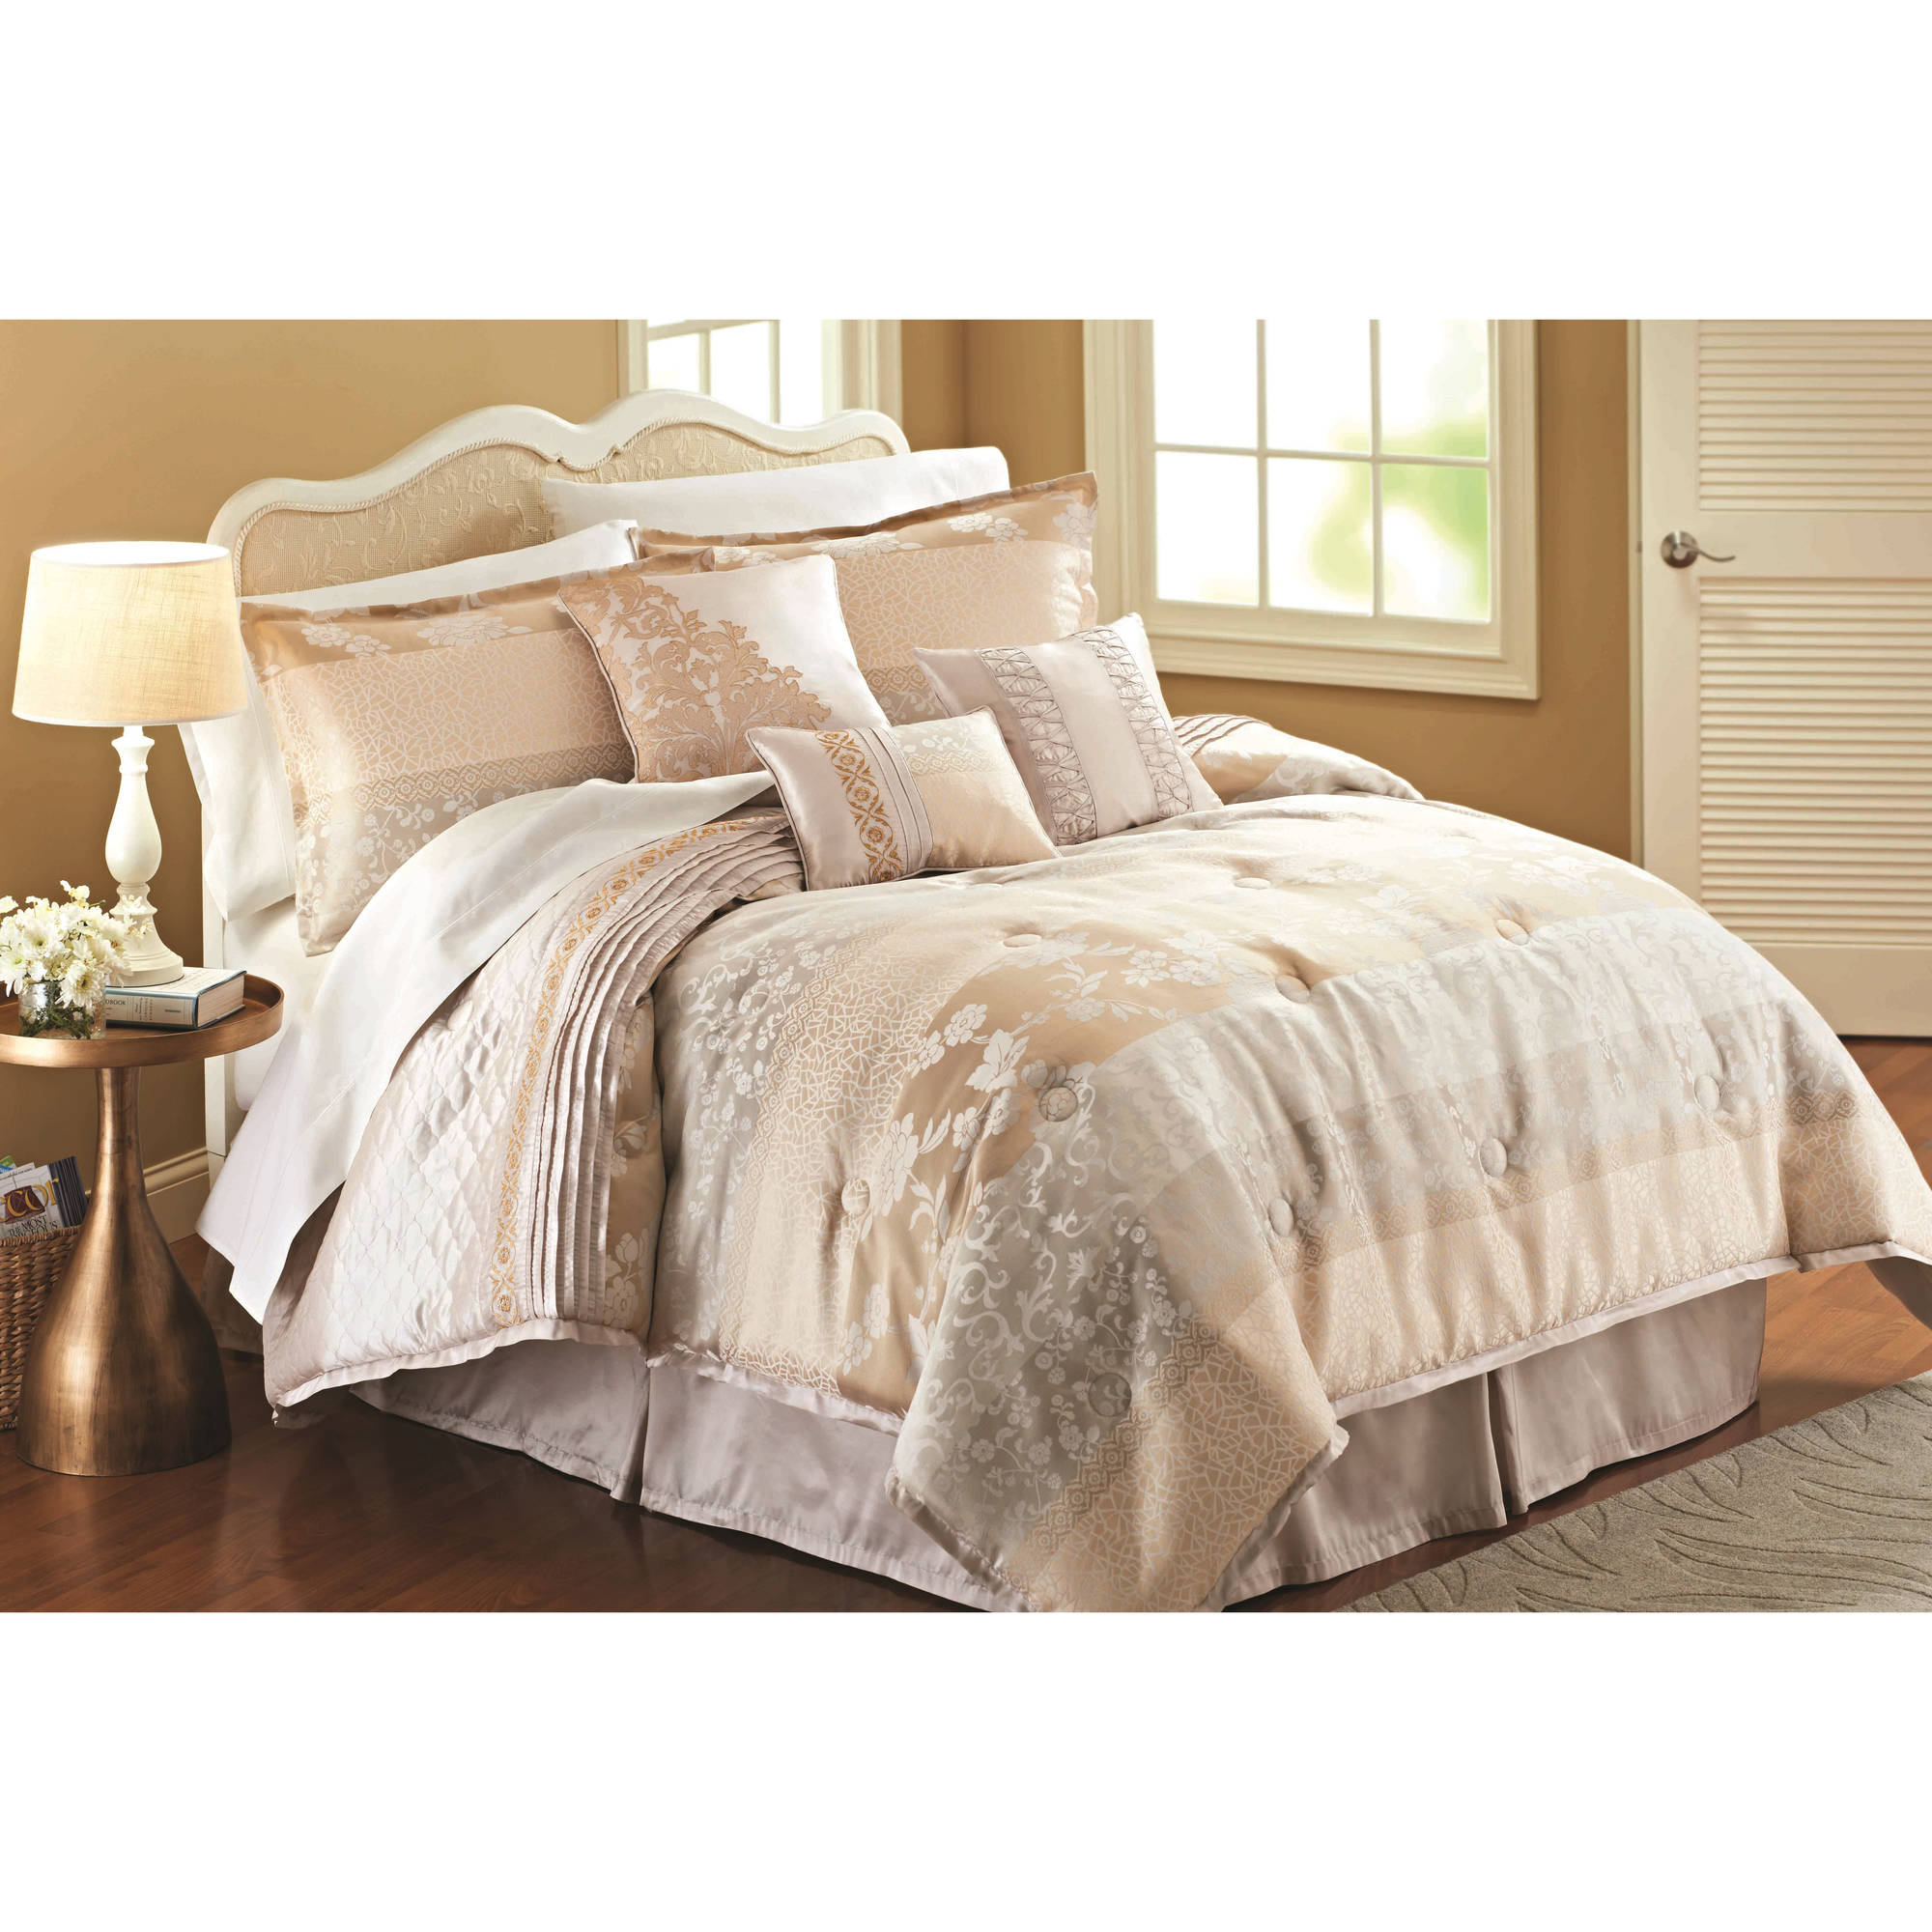 Better Homes and Gardens 7 Piece Catania Quilt Set